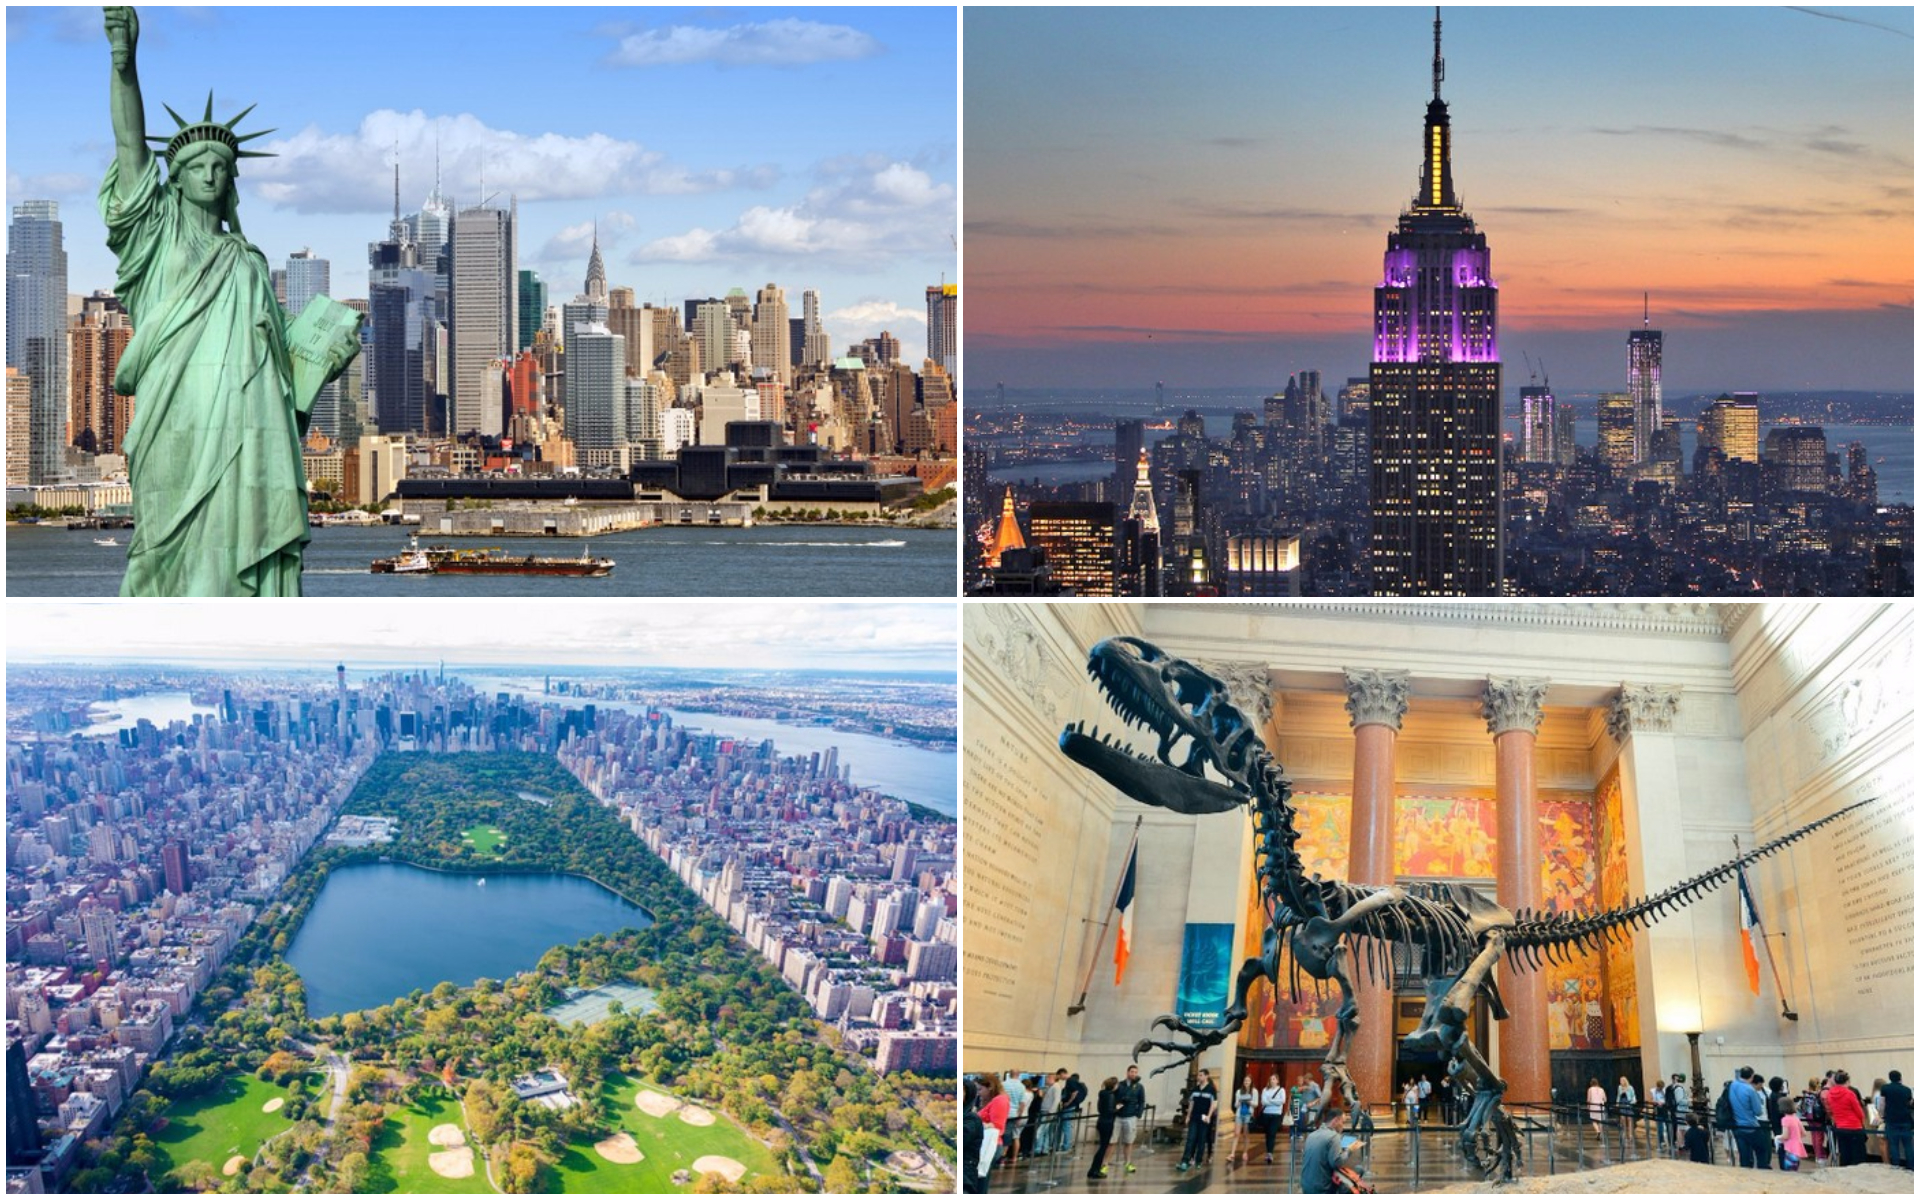 Top 10 most popular new york city attractions page 3 for Must see attractions in new york city